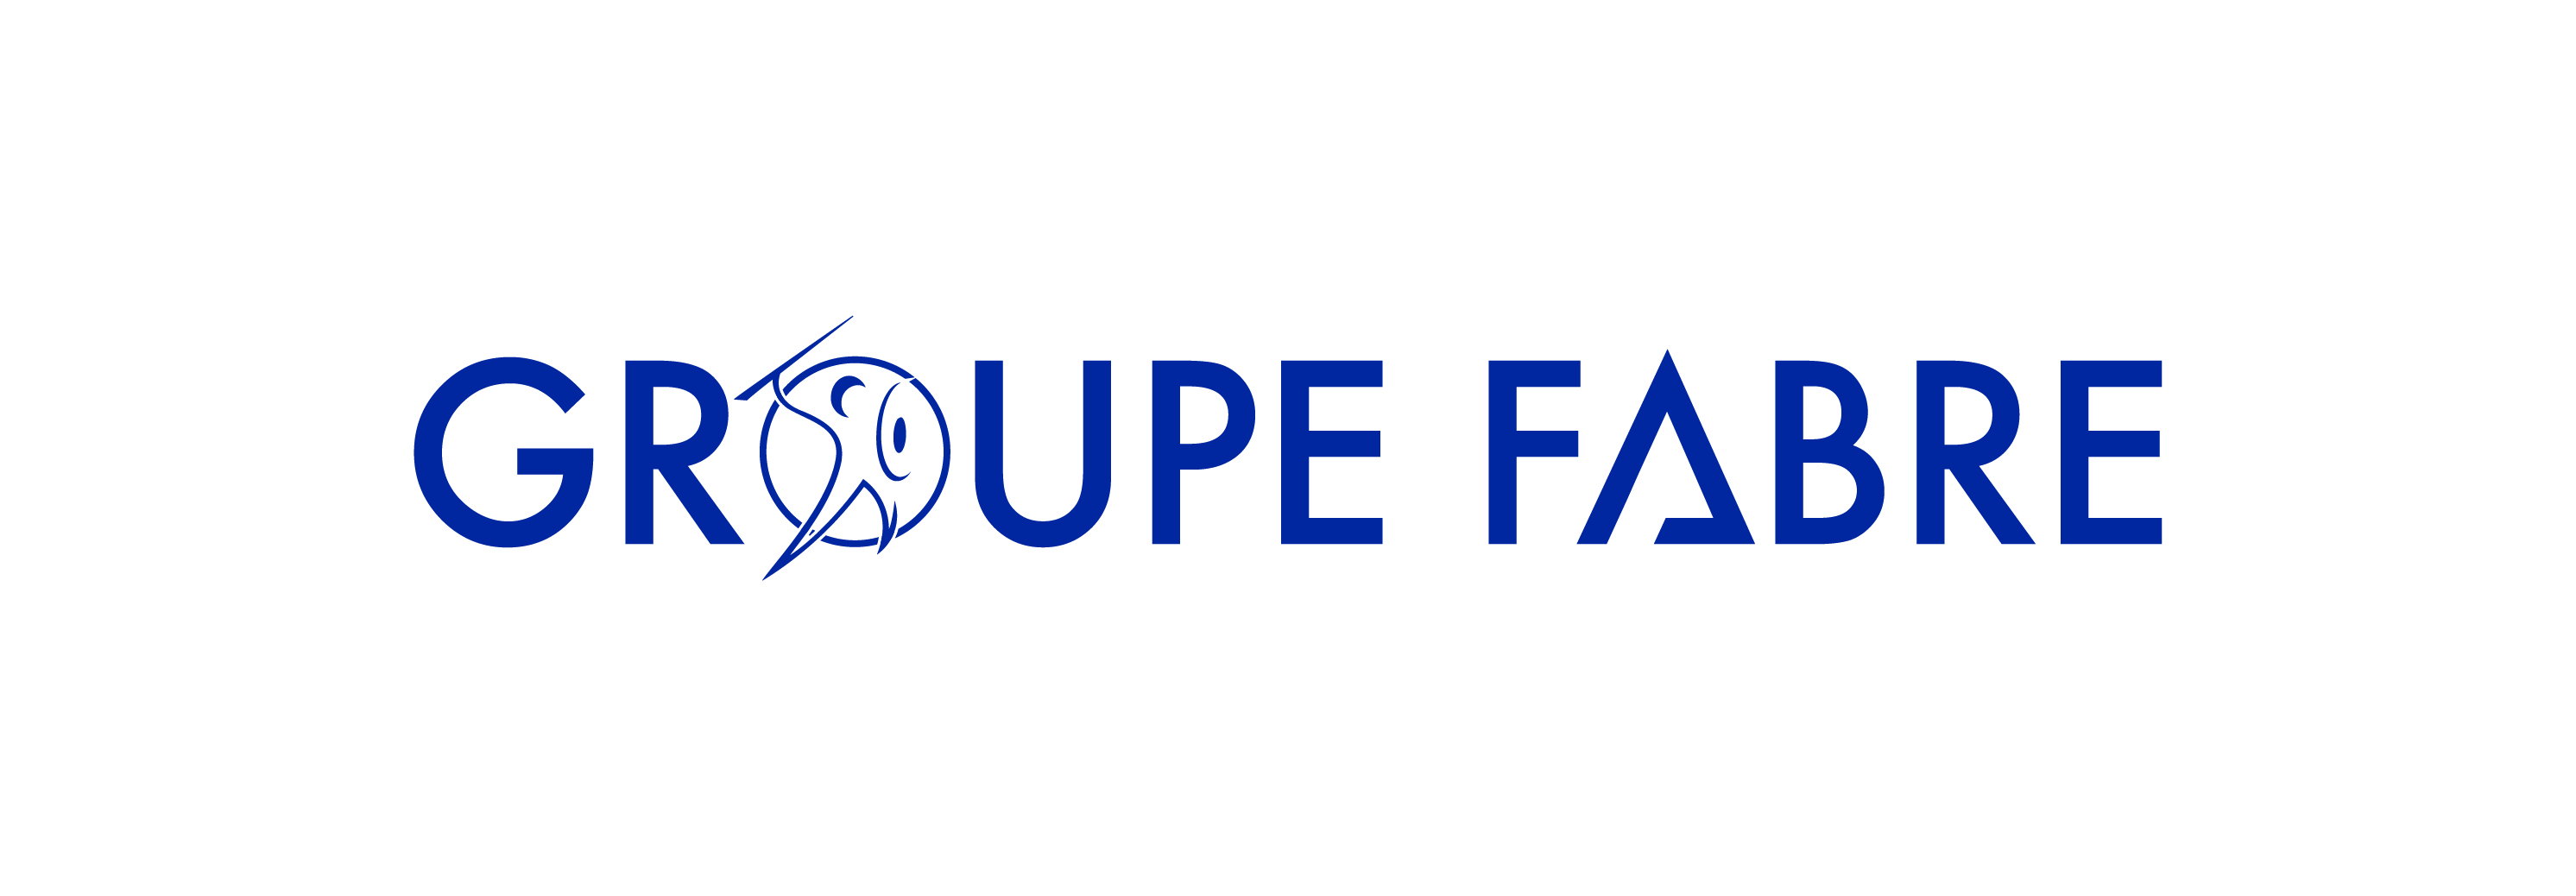 Groupe Fabre